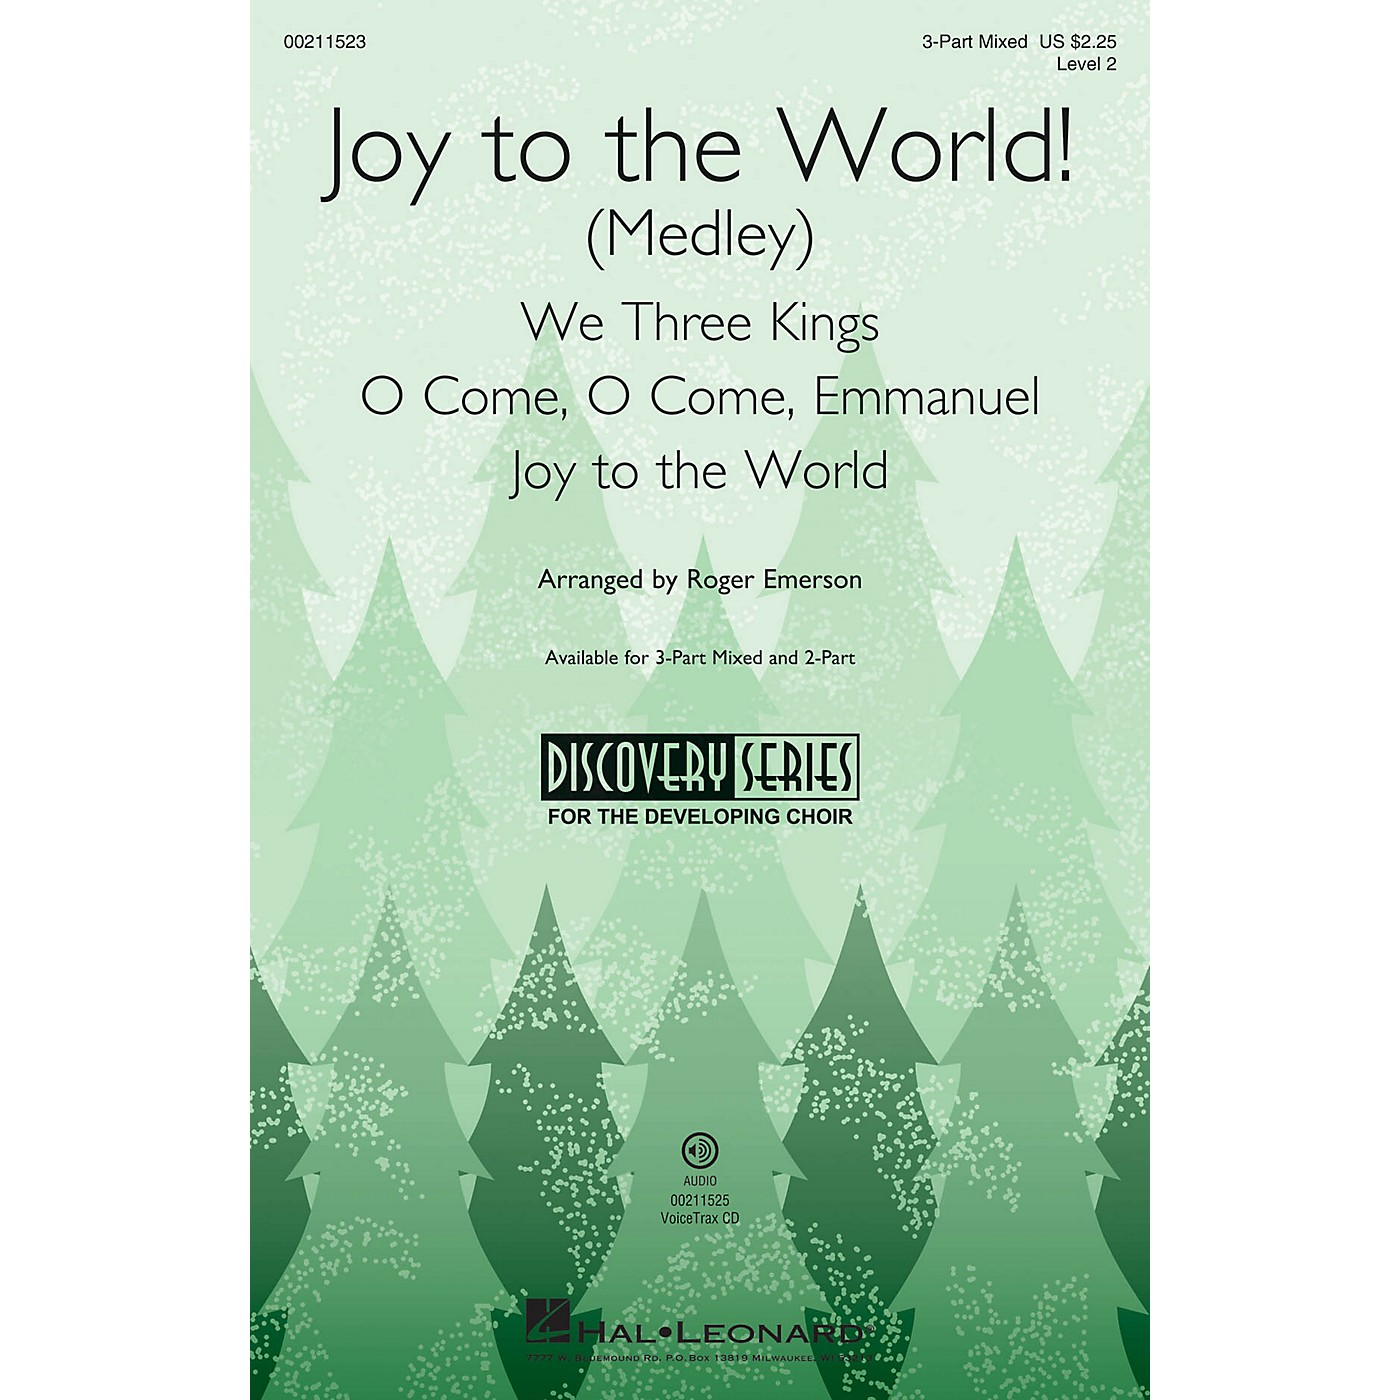 Hal Leonard Joy to the World! (Medley) (Discovery Level 2) VoiceTrax CD Arranged by Roger Emerson thumbnail